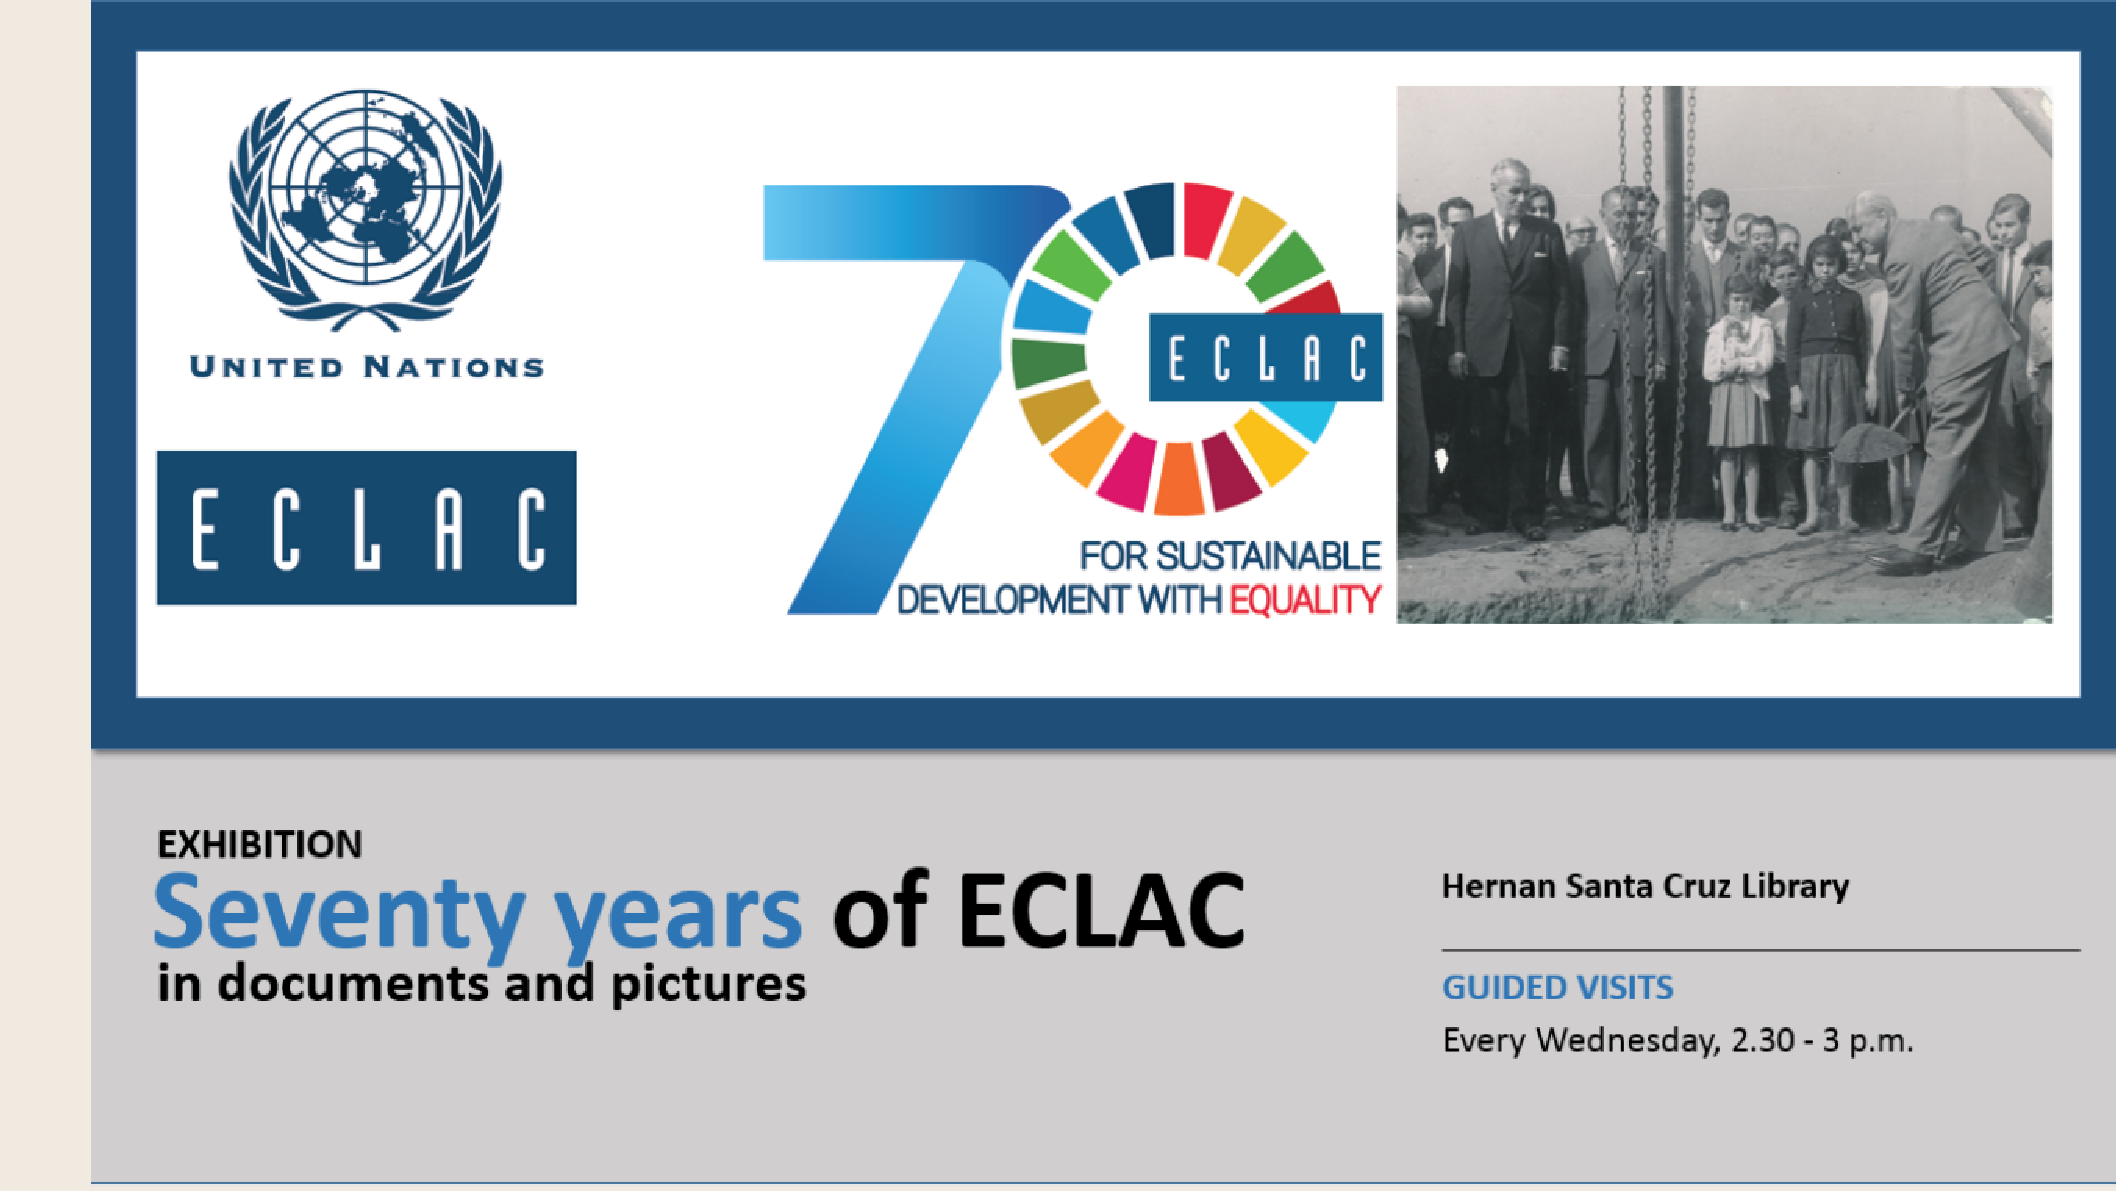 Exhibition 70 years ECLAC